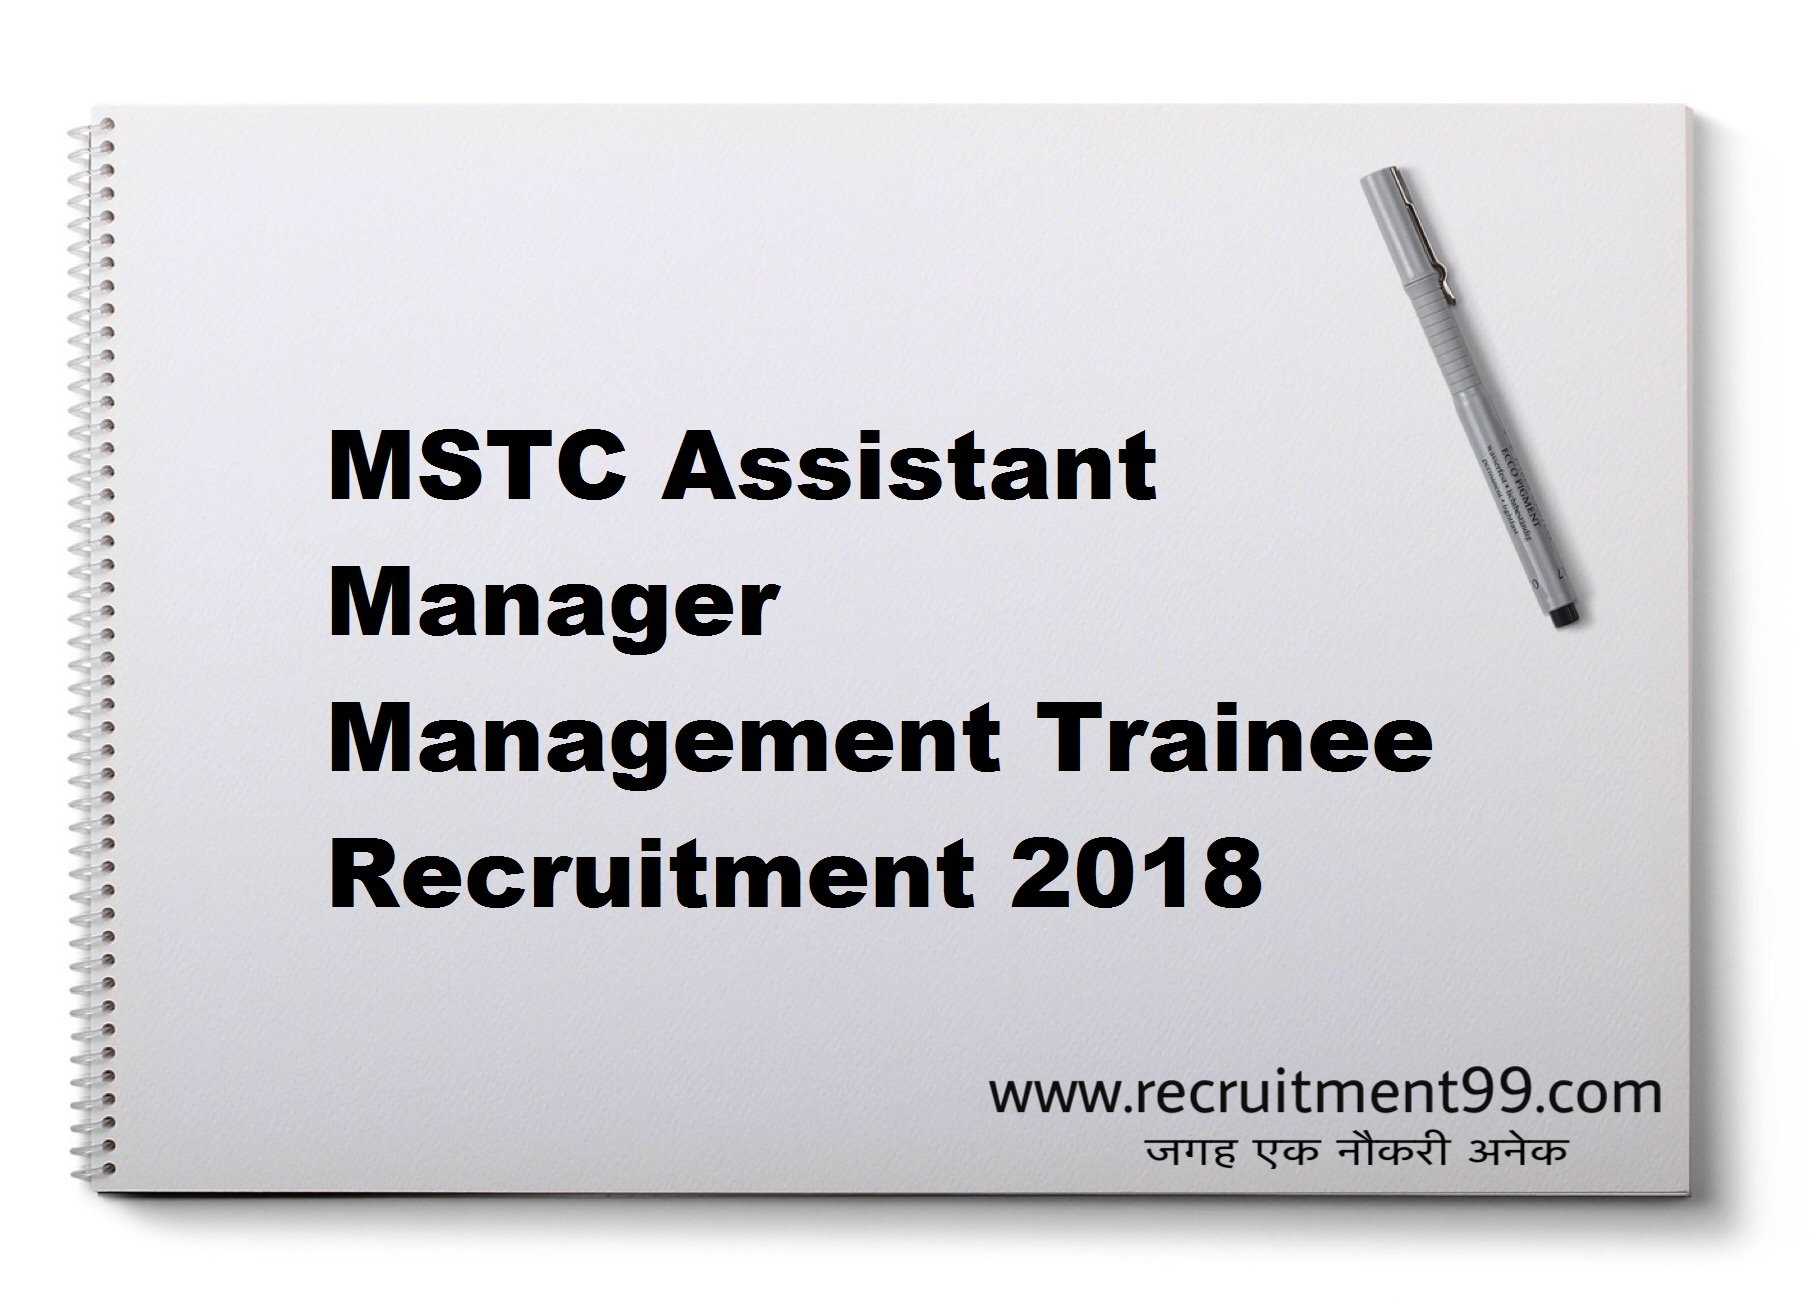 MSTC Assistant Manager Management Trainee Recruitment Admit Card Result 2018